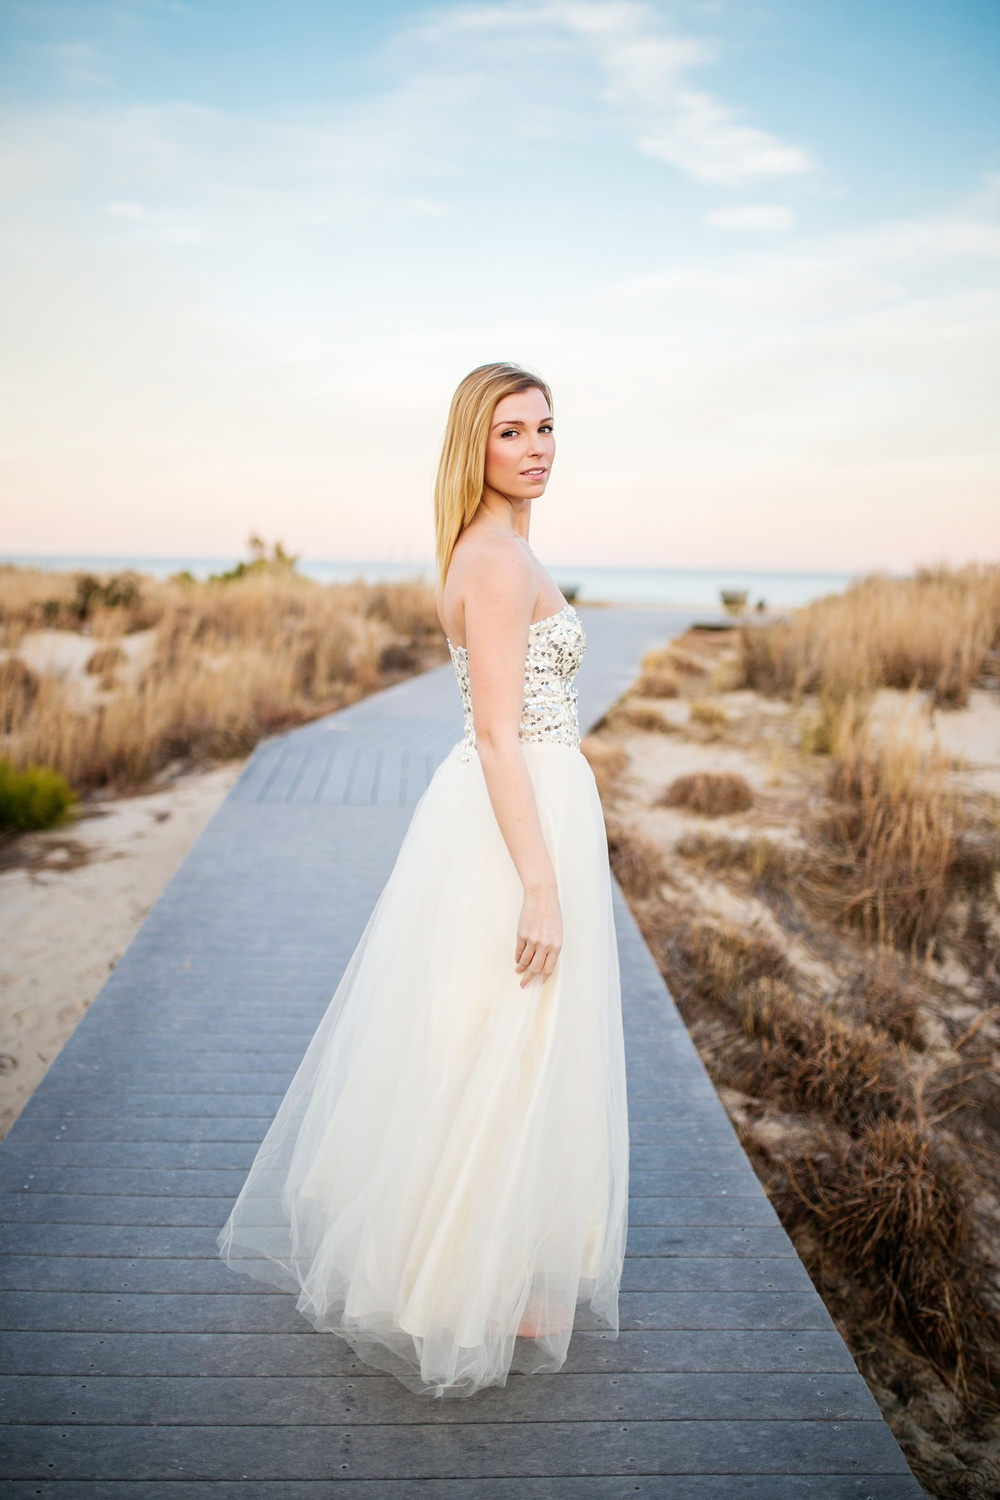 VirginiaBeachWeddingPhotographer_0018.jpg